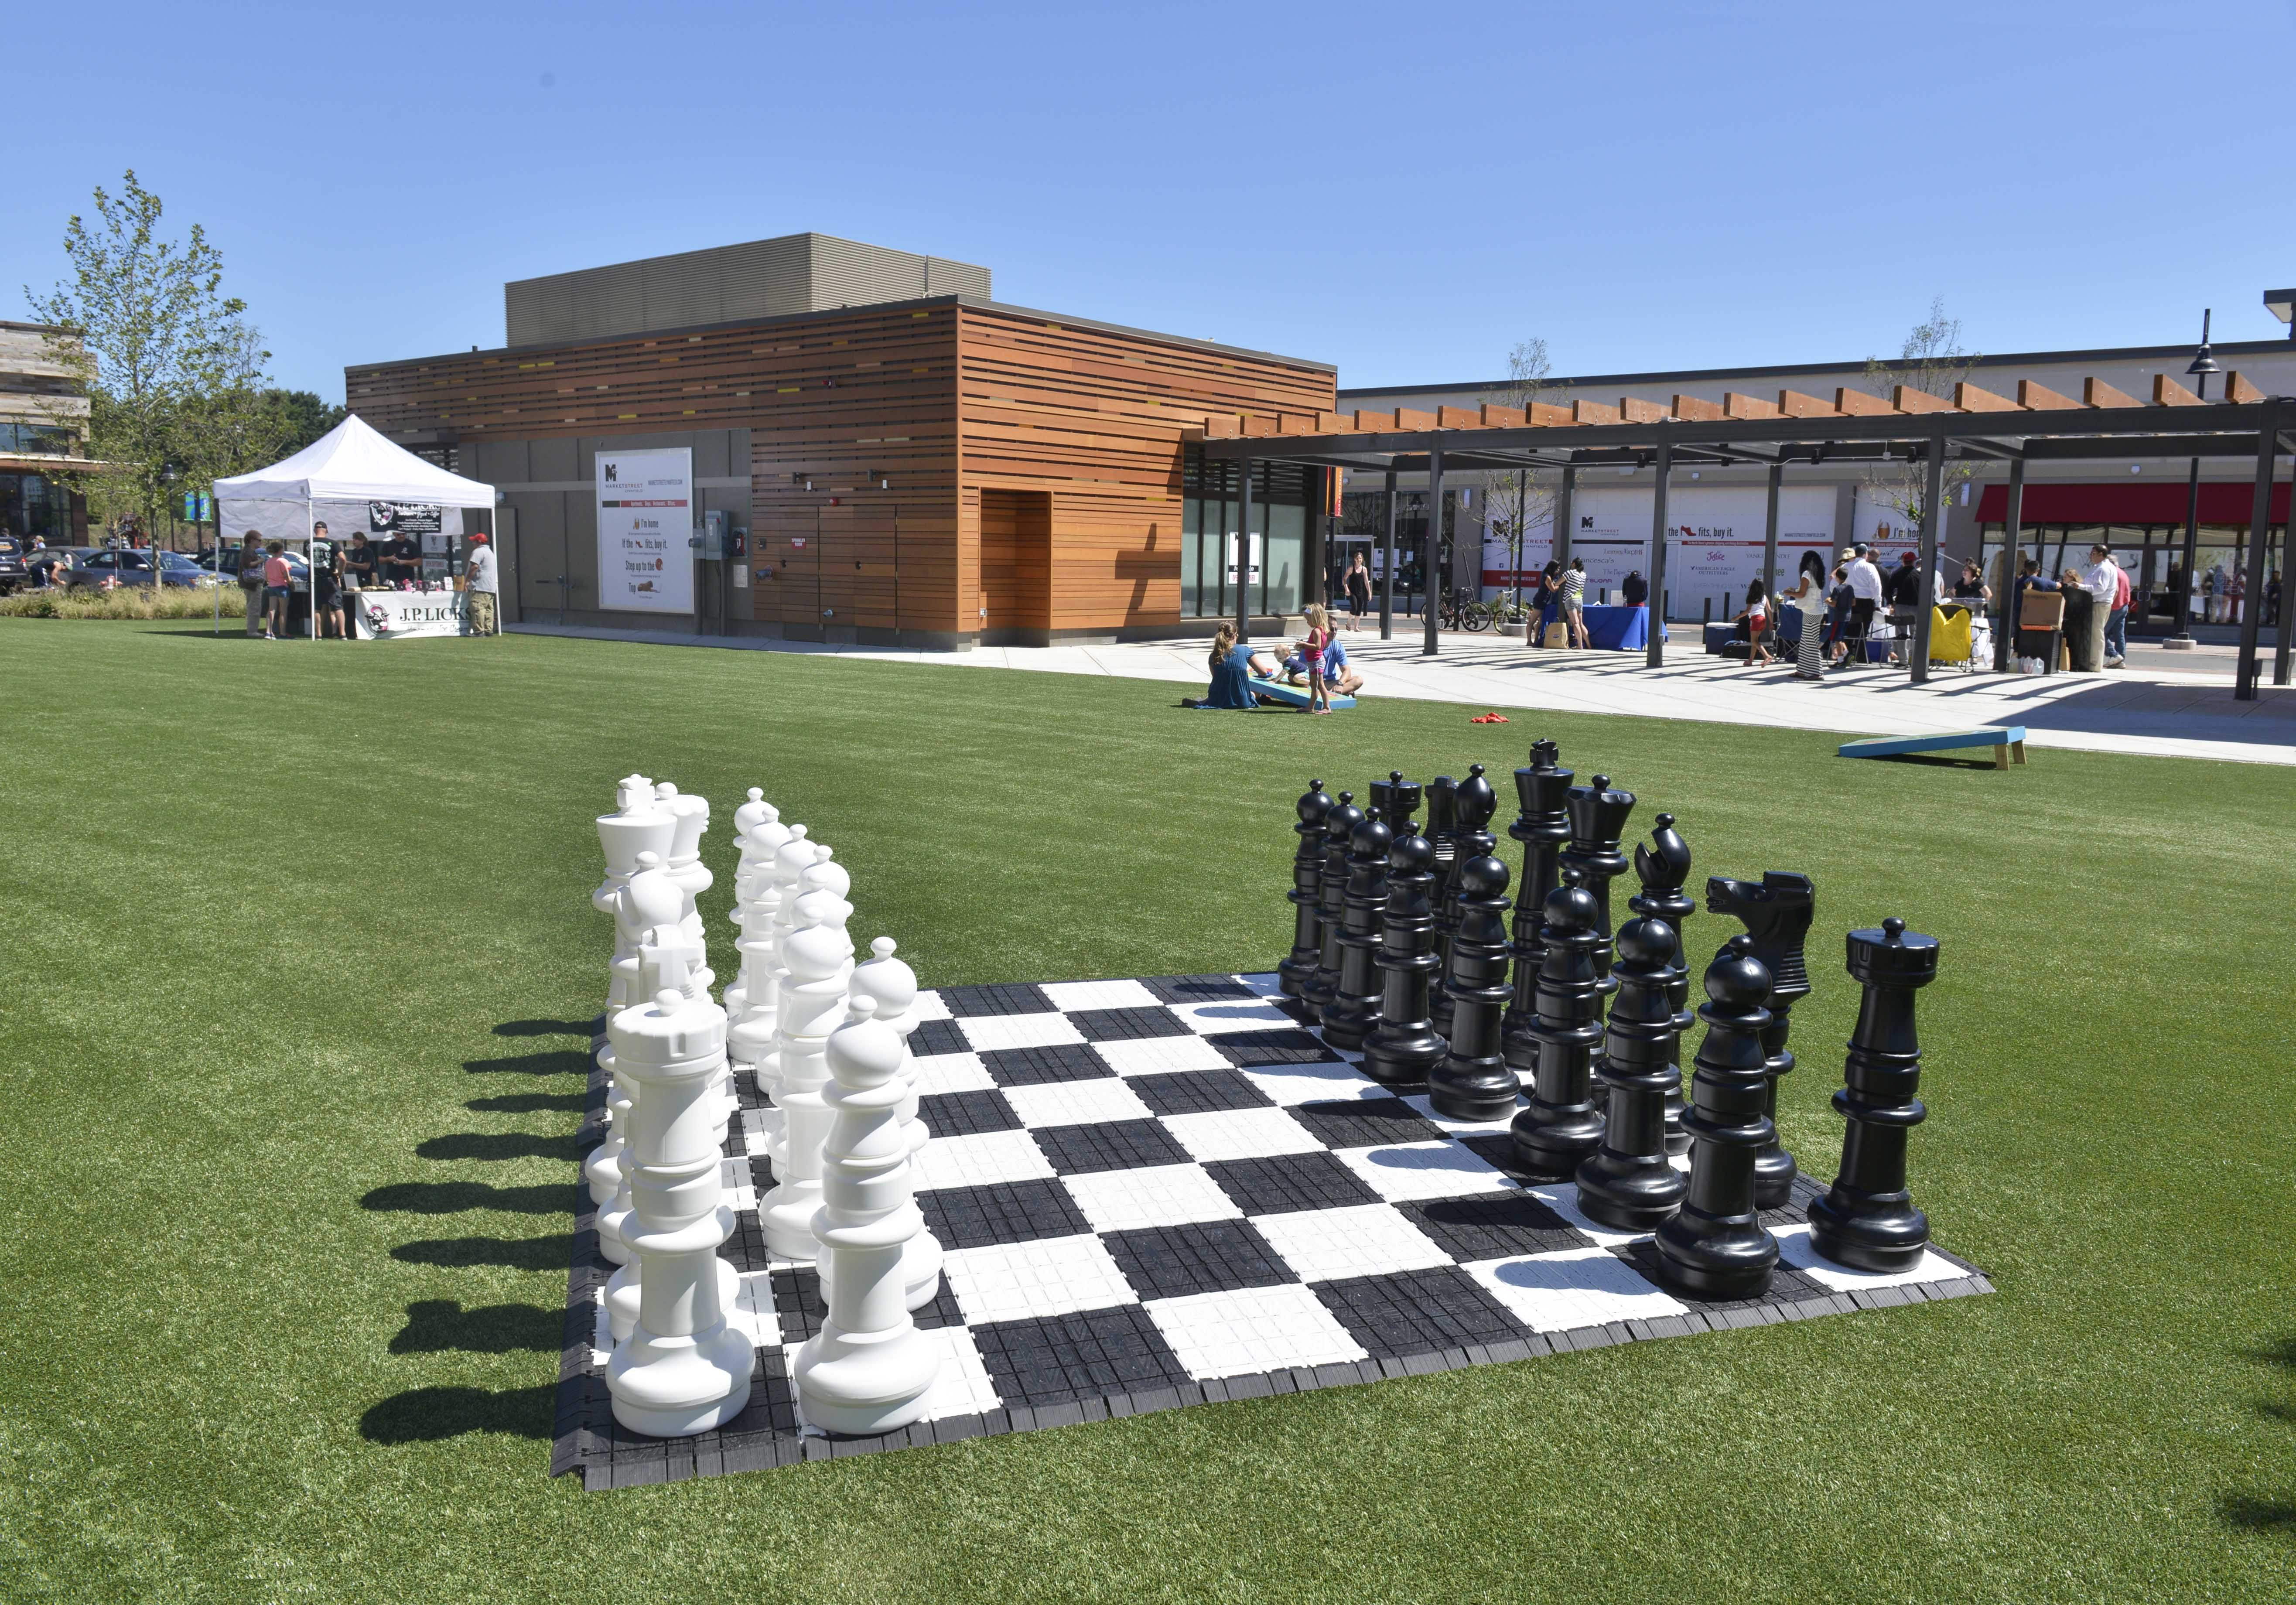 Our new outdoor chess board at MarketStreet in Lynnfield MA